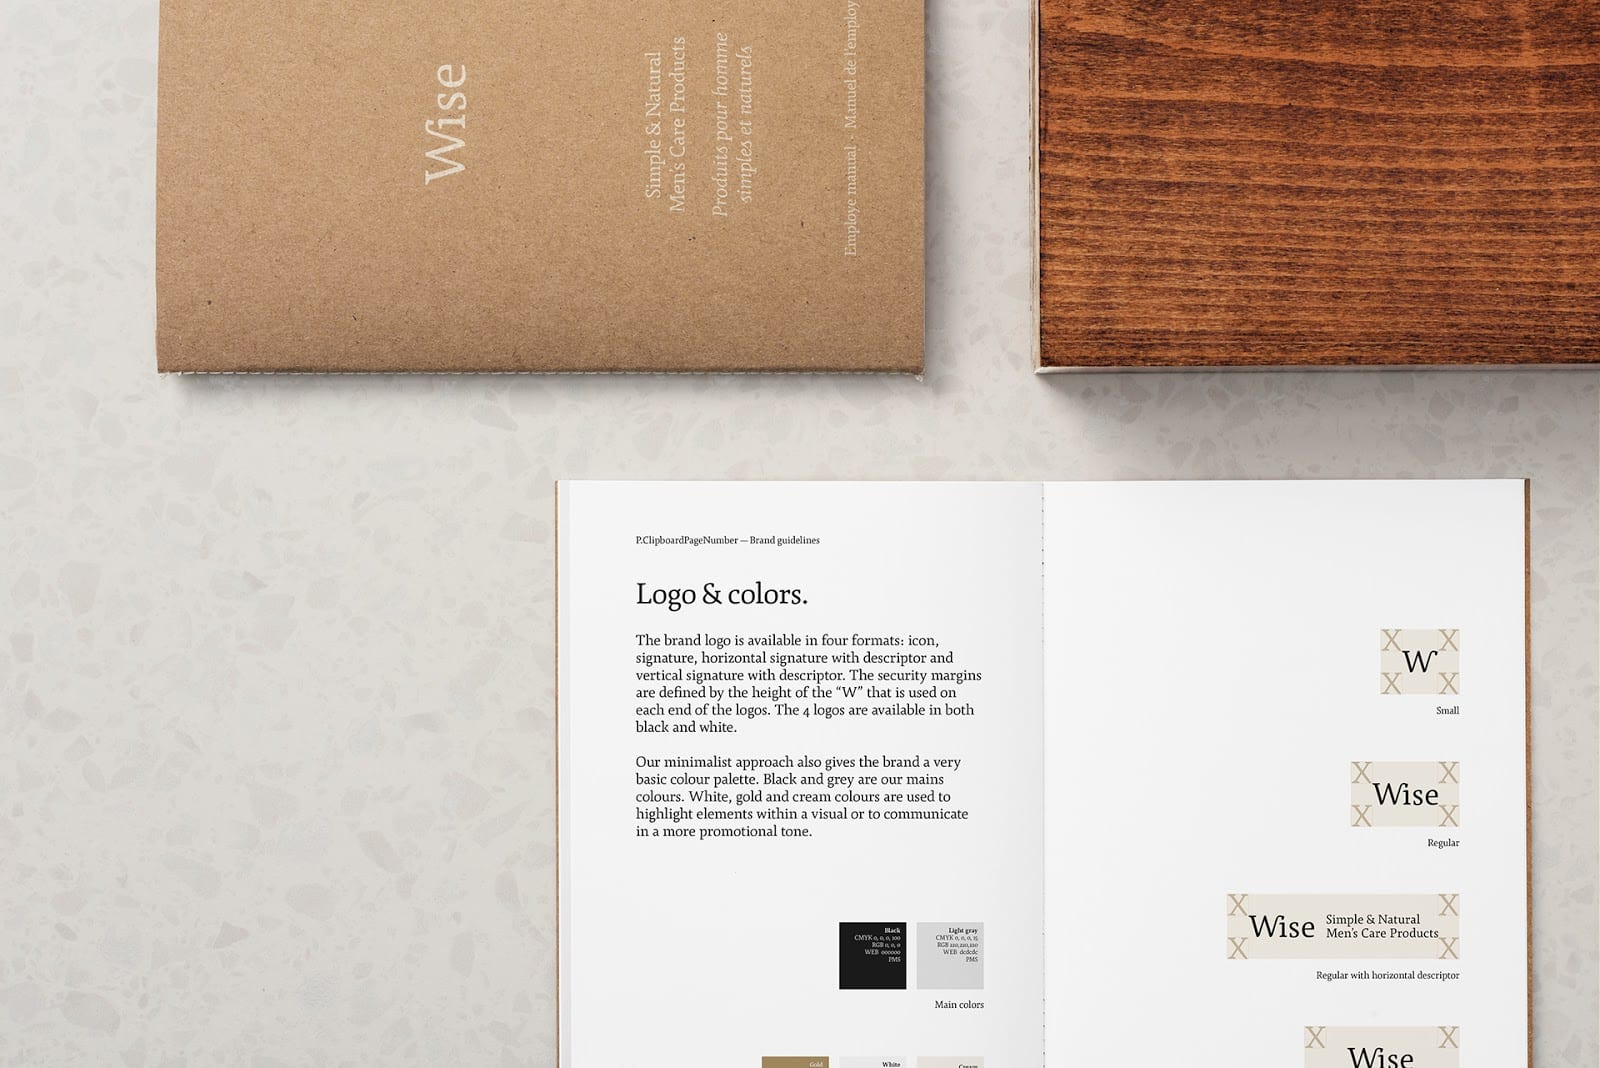 Wise Mens Care Brand Identity and Packaging 016 - Ach, tie obaly – péče Wise Men